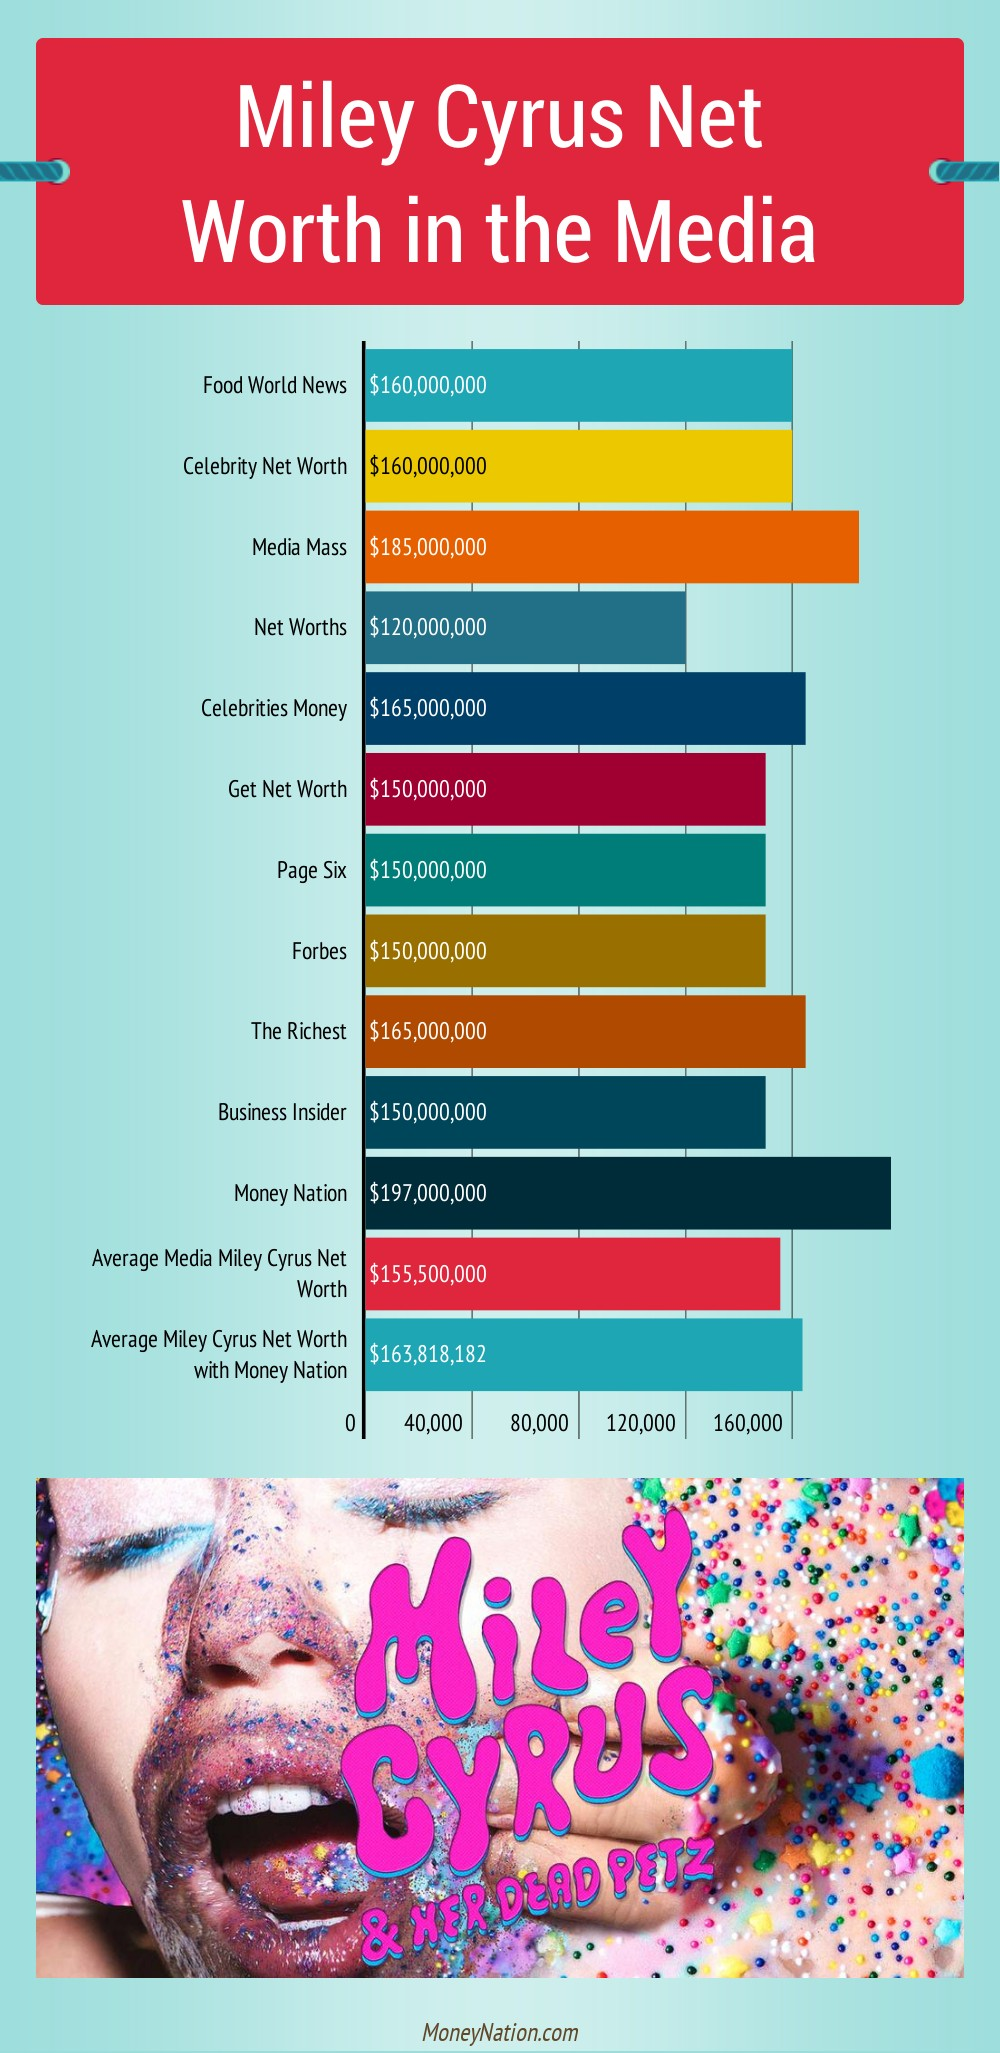 Miley Cyrus Net Worth in the Media